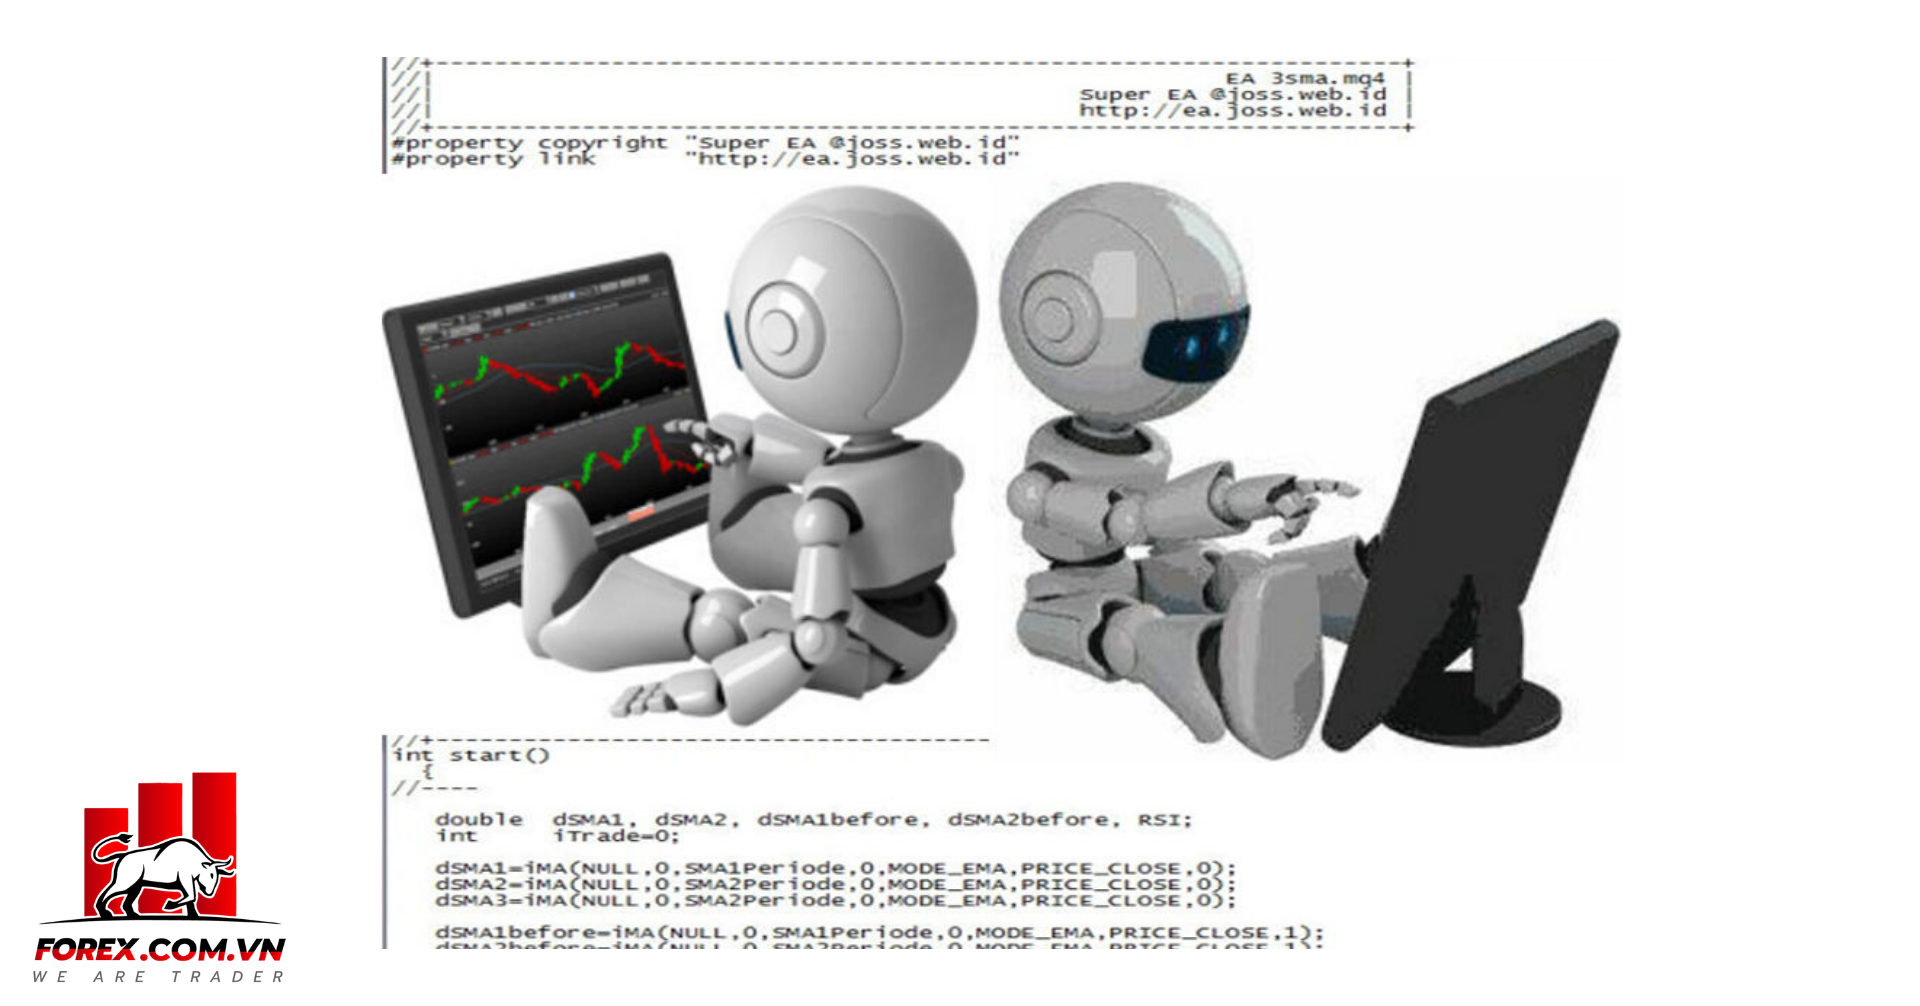 Robot Giao Dich Forex